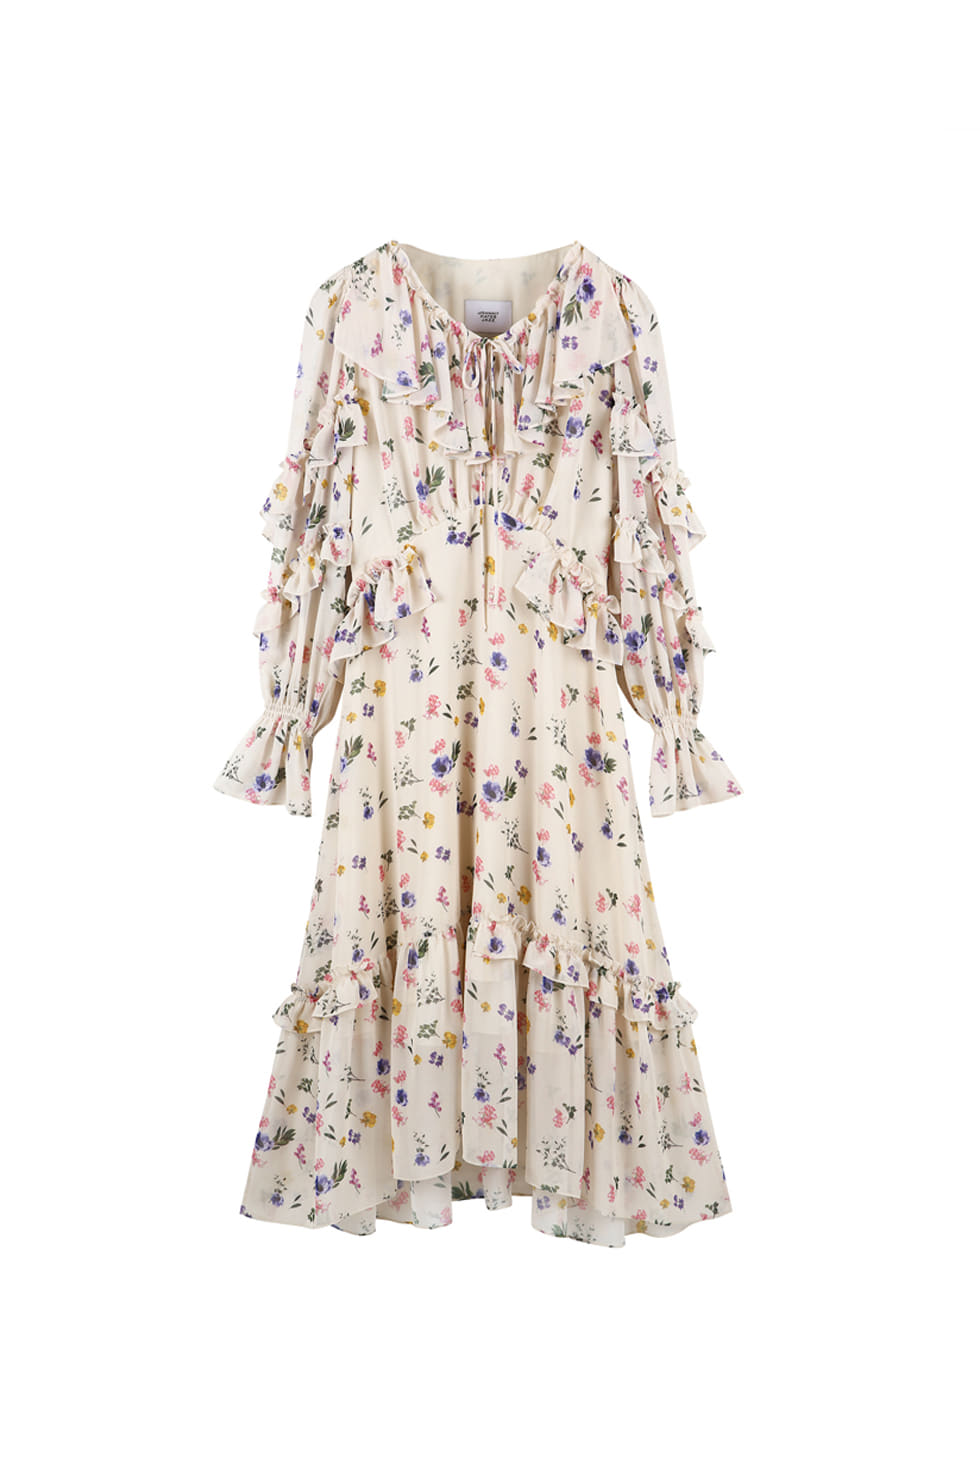 FLORAL RUFFLE DRESS - IVORY